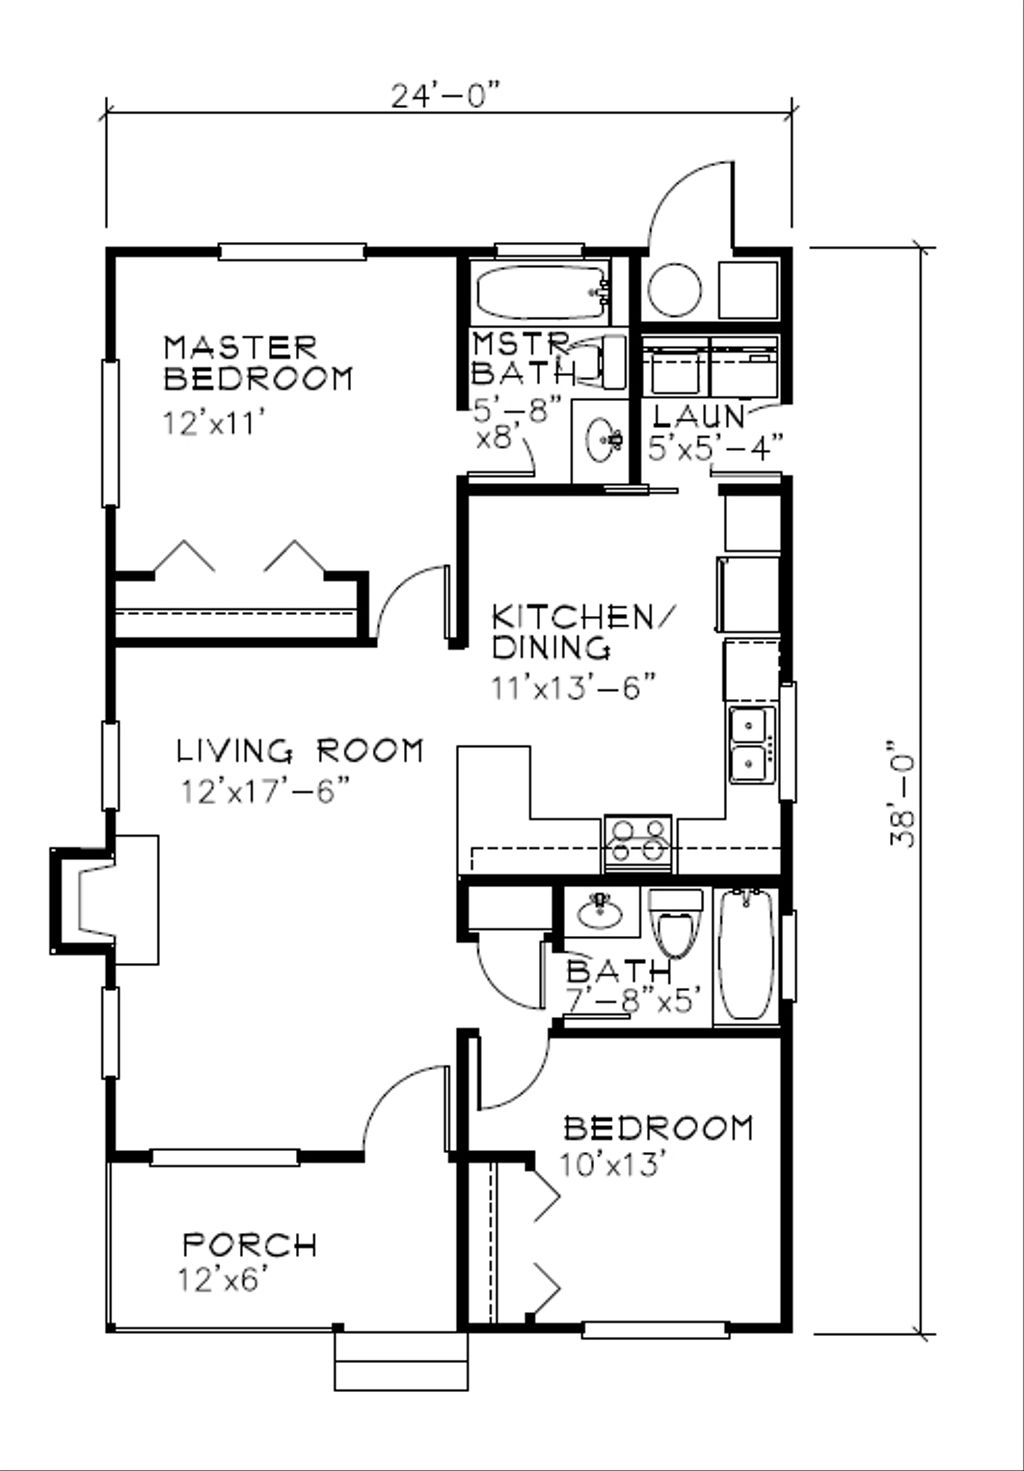 Cottage Style House Plan - 2 Beds 2 Baths 838 Sq/Ft Plan #515-18 on 2 bedroom house house plans, studio style house plans, bungalow style house plans, english tudor style house plans, 2 bedroom ranch house plans,